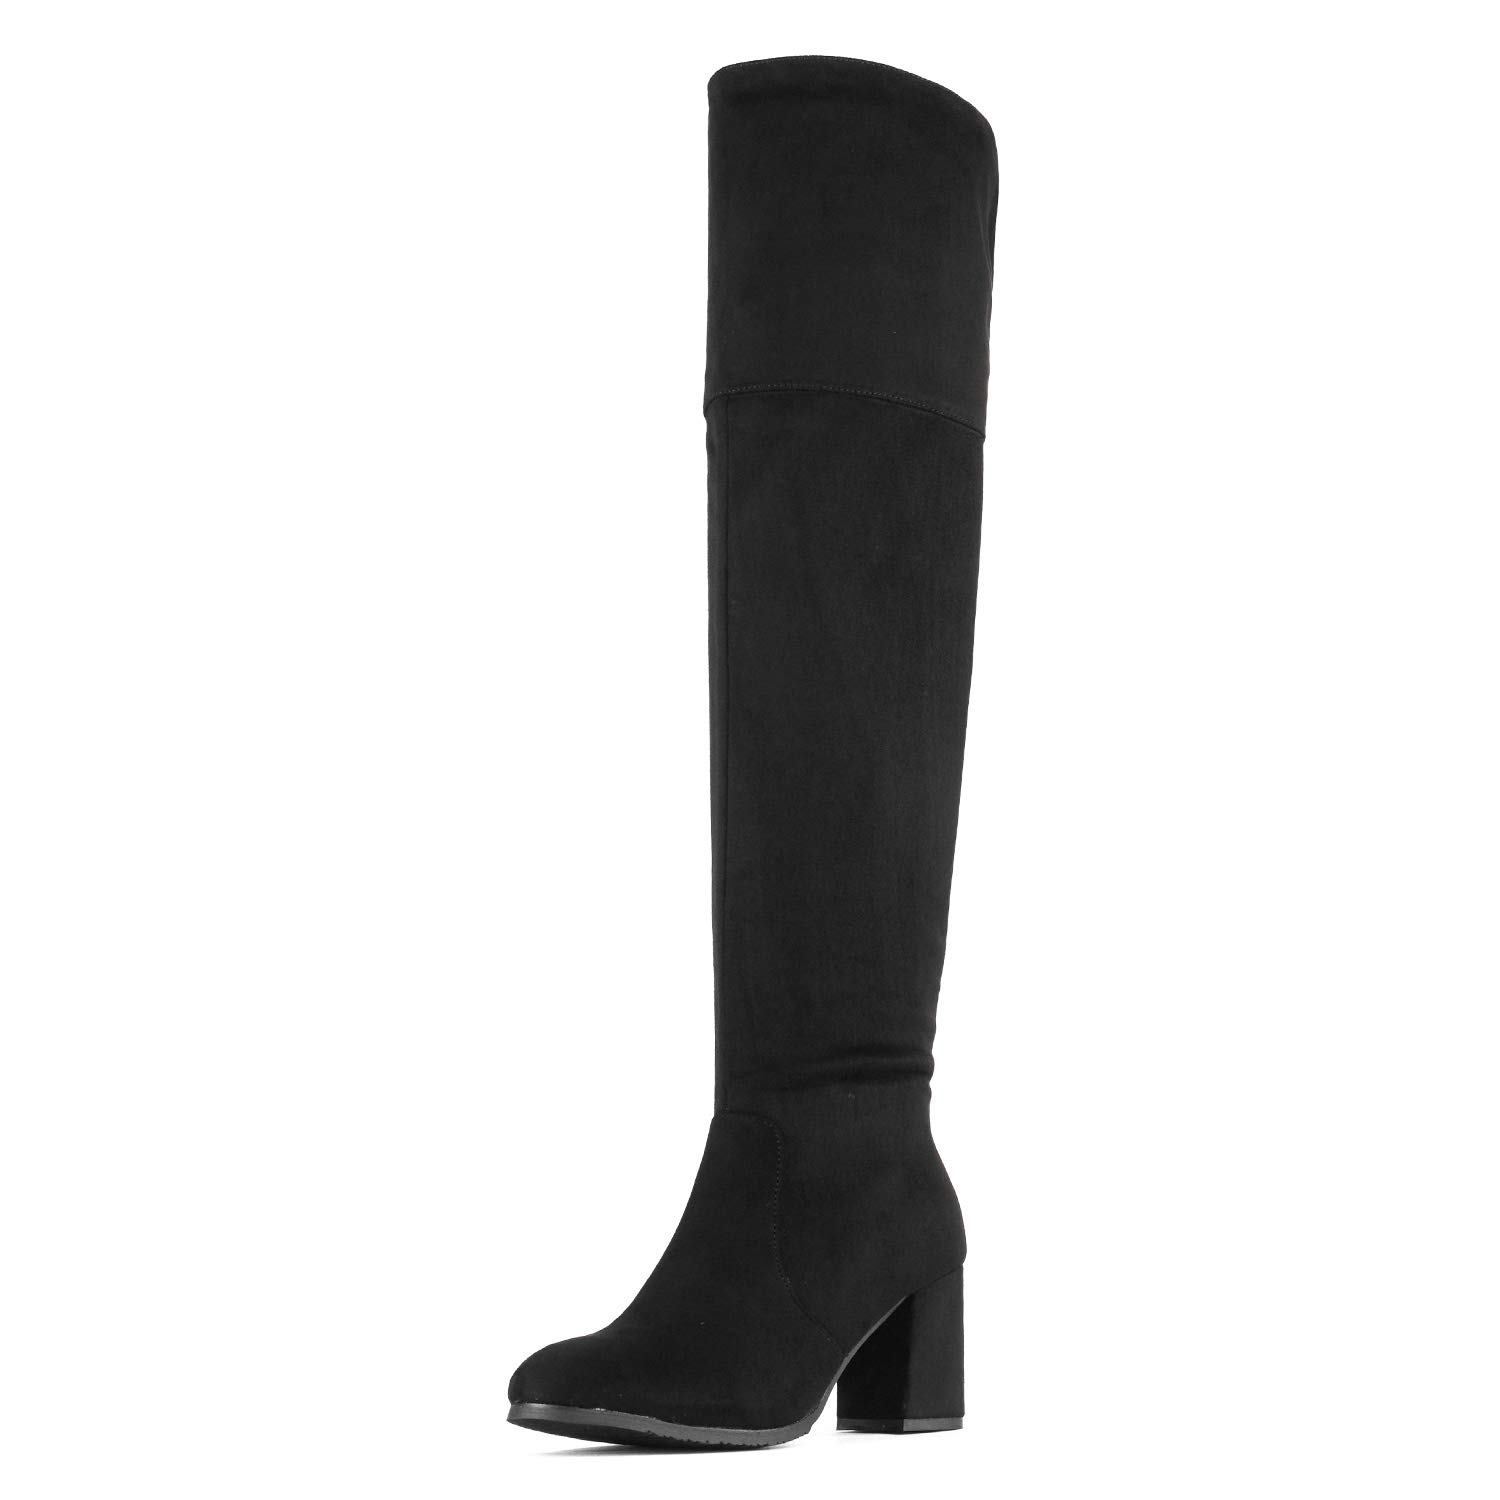 06993a3beb3 DREAM PAIRS Women s Fashion Over The Knee Chunky High Heel Thigh High Boots  product image